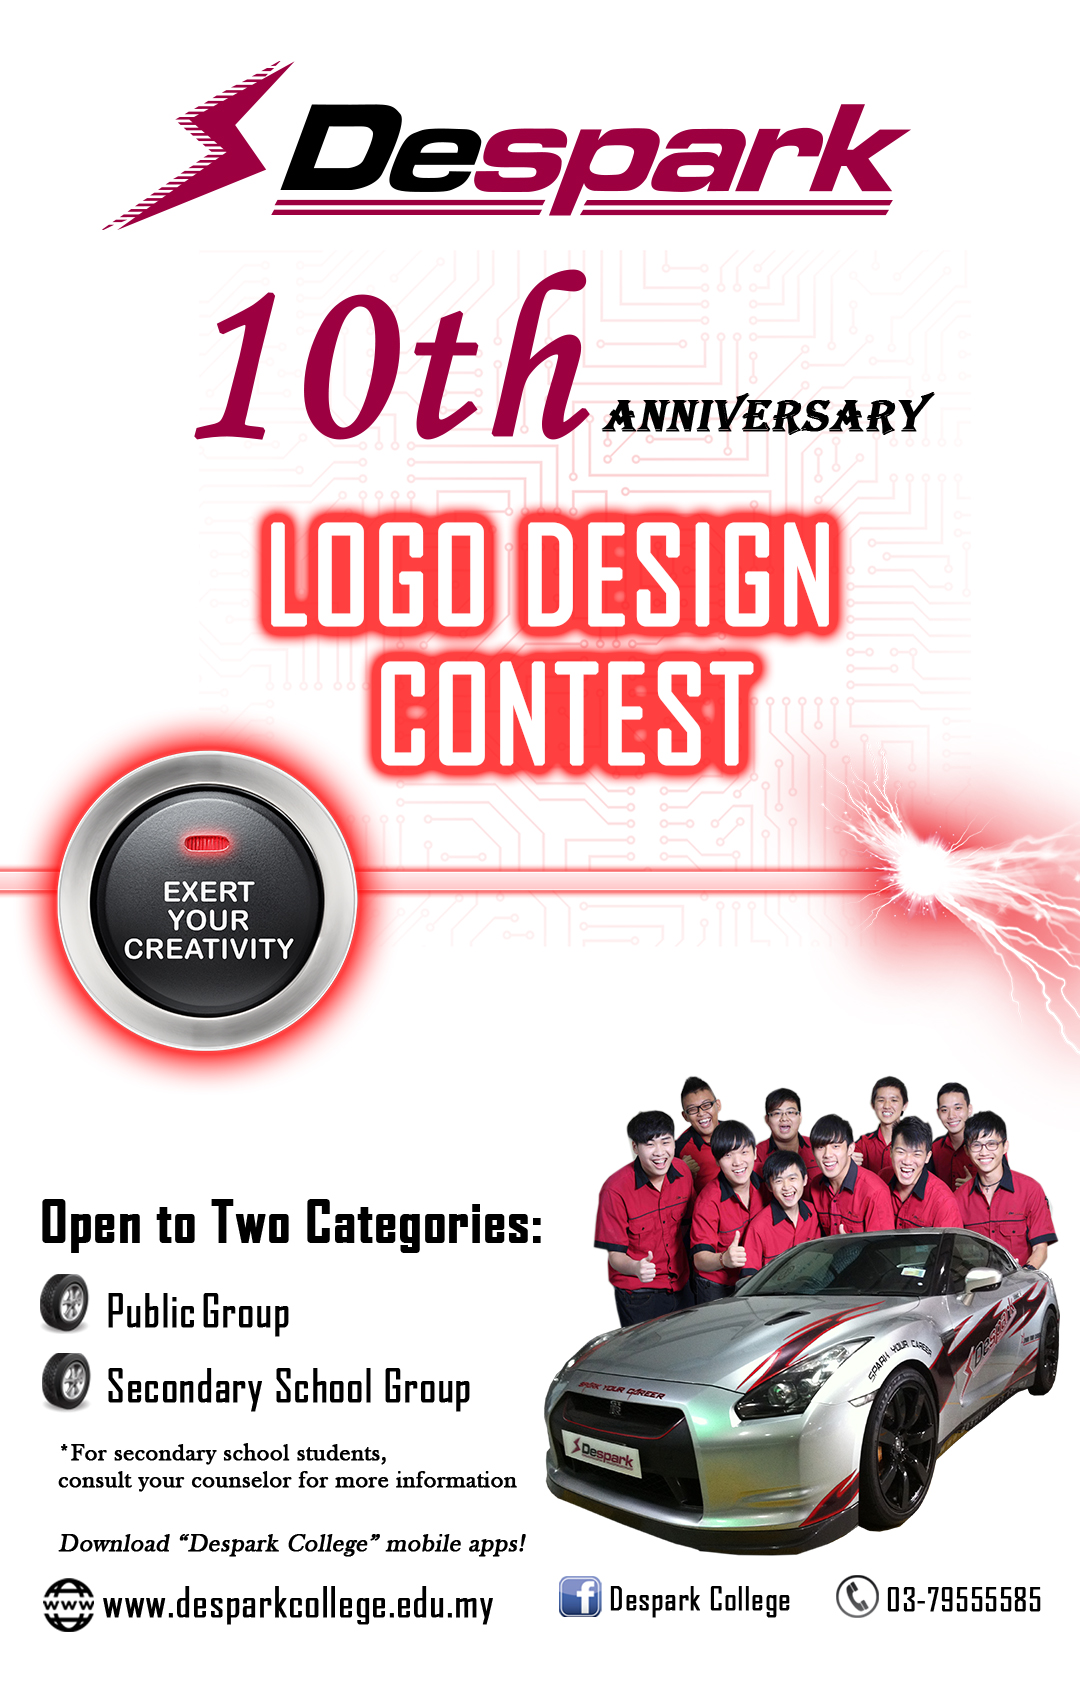 10th anniversary logo design competition despark college Logo design competitions